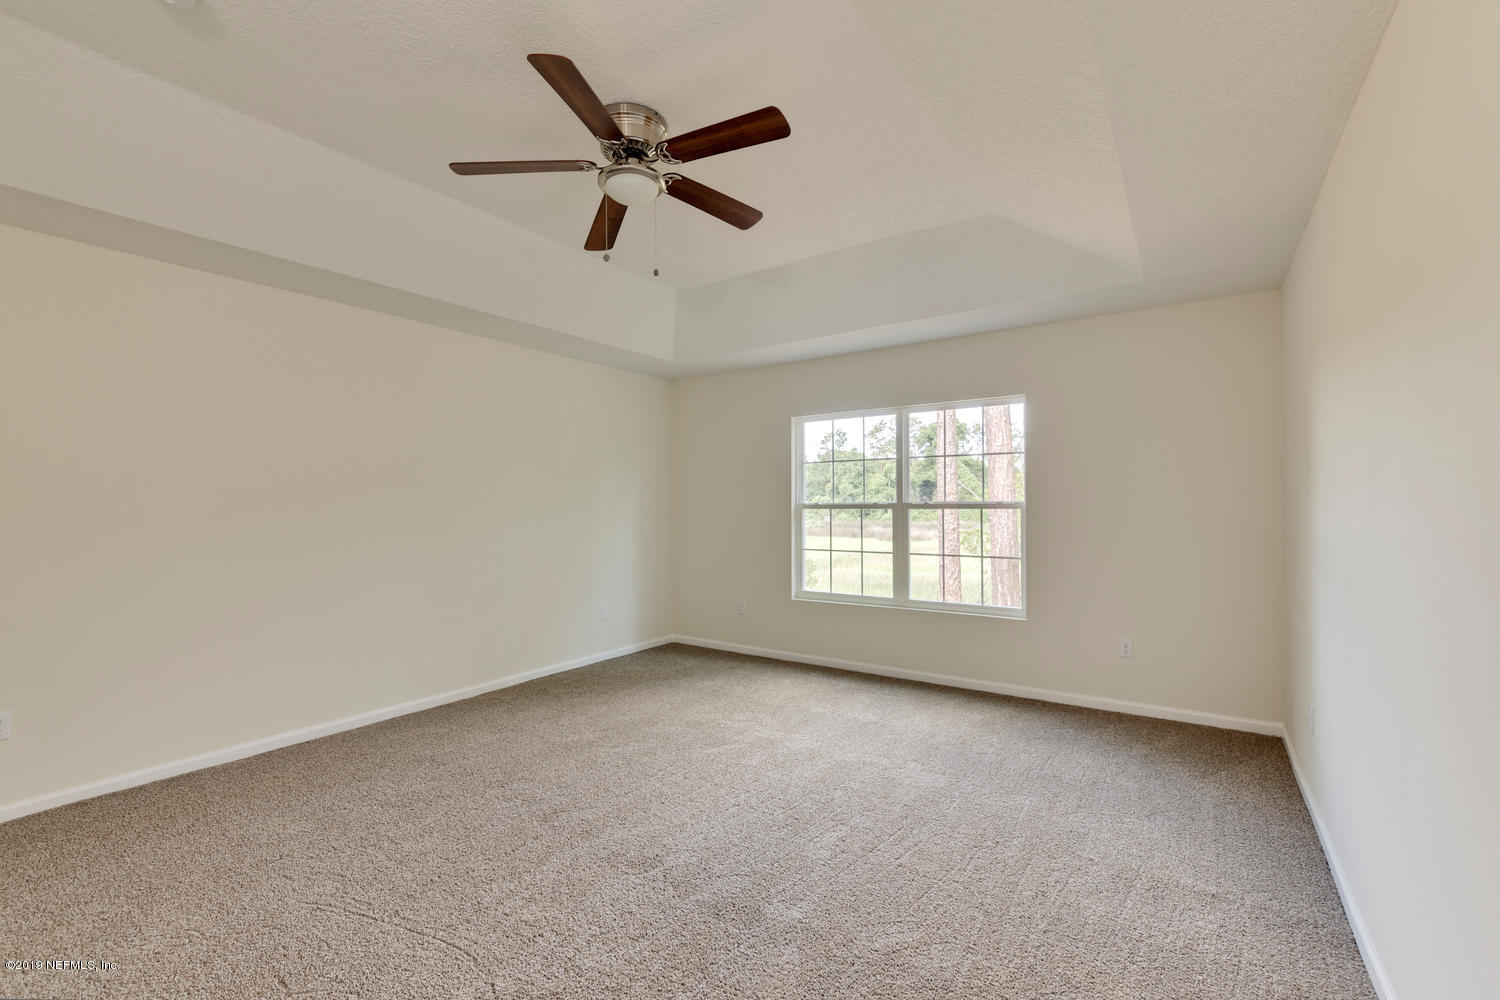 11266 PINE MOSS, JACKSONVILLE, FLORIDA 32218, 3 Bedrooms Bedrooms, ,2 BathroomsBathrooms,Residential - single family,For sale,PINE MOSS,990539